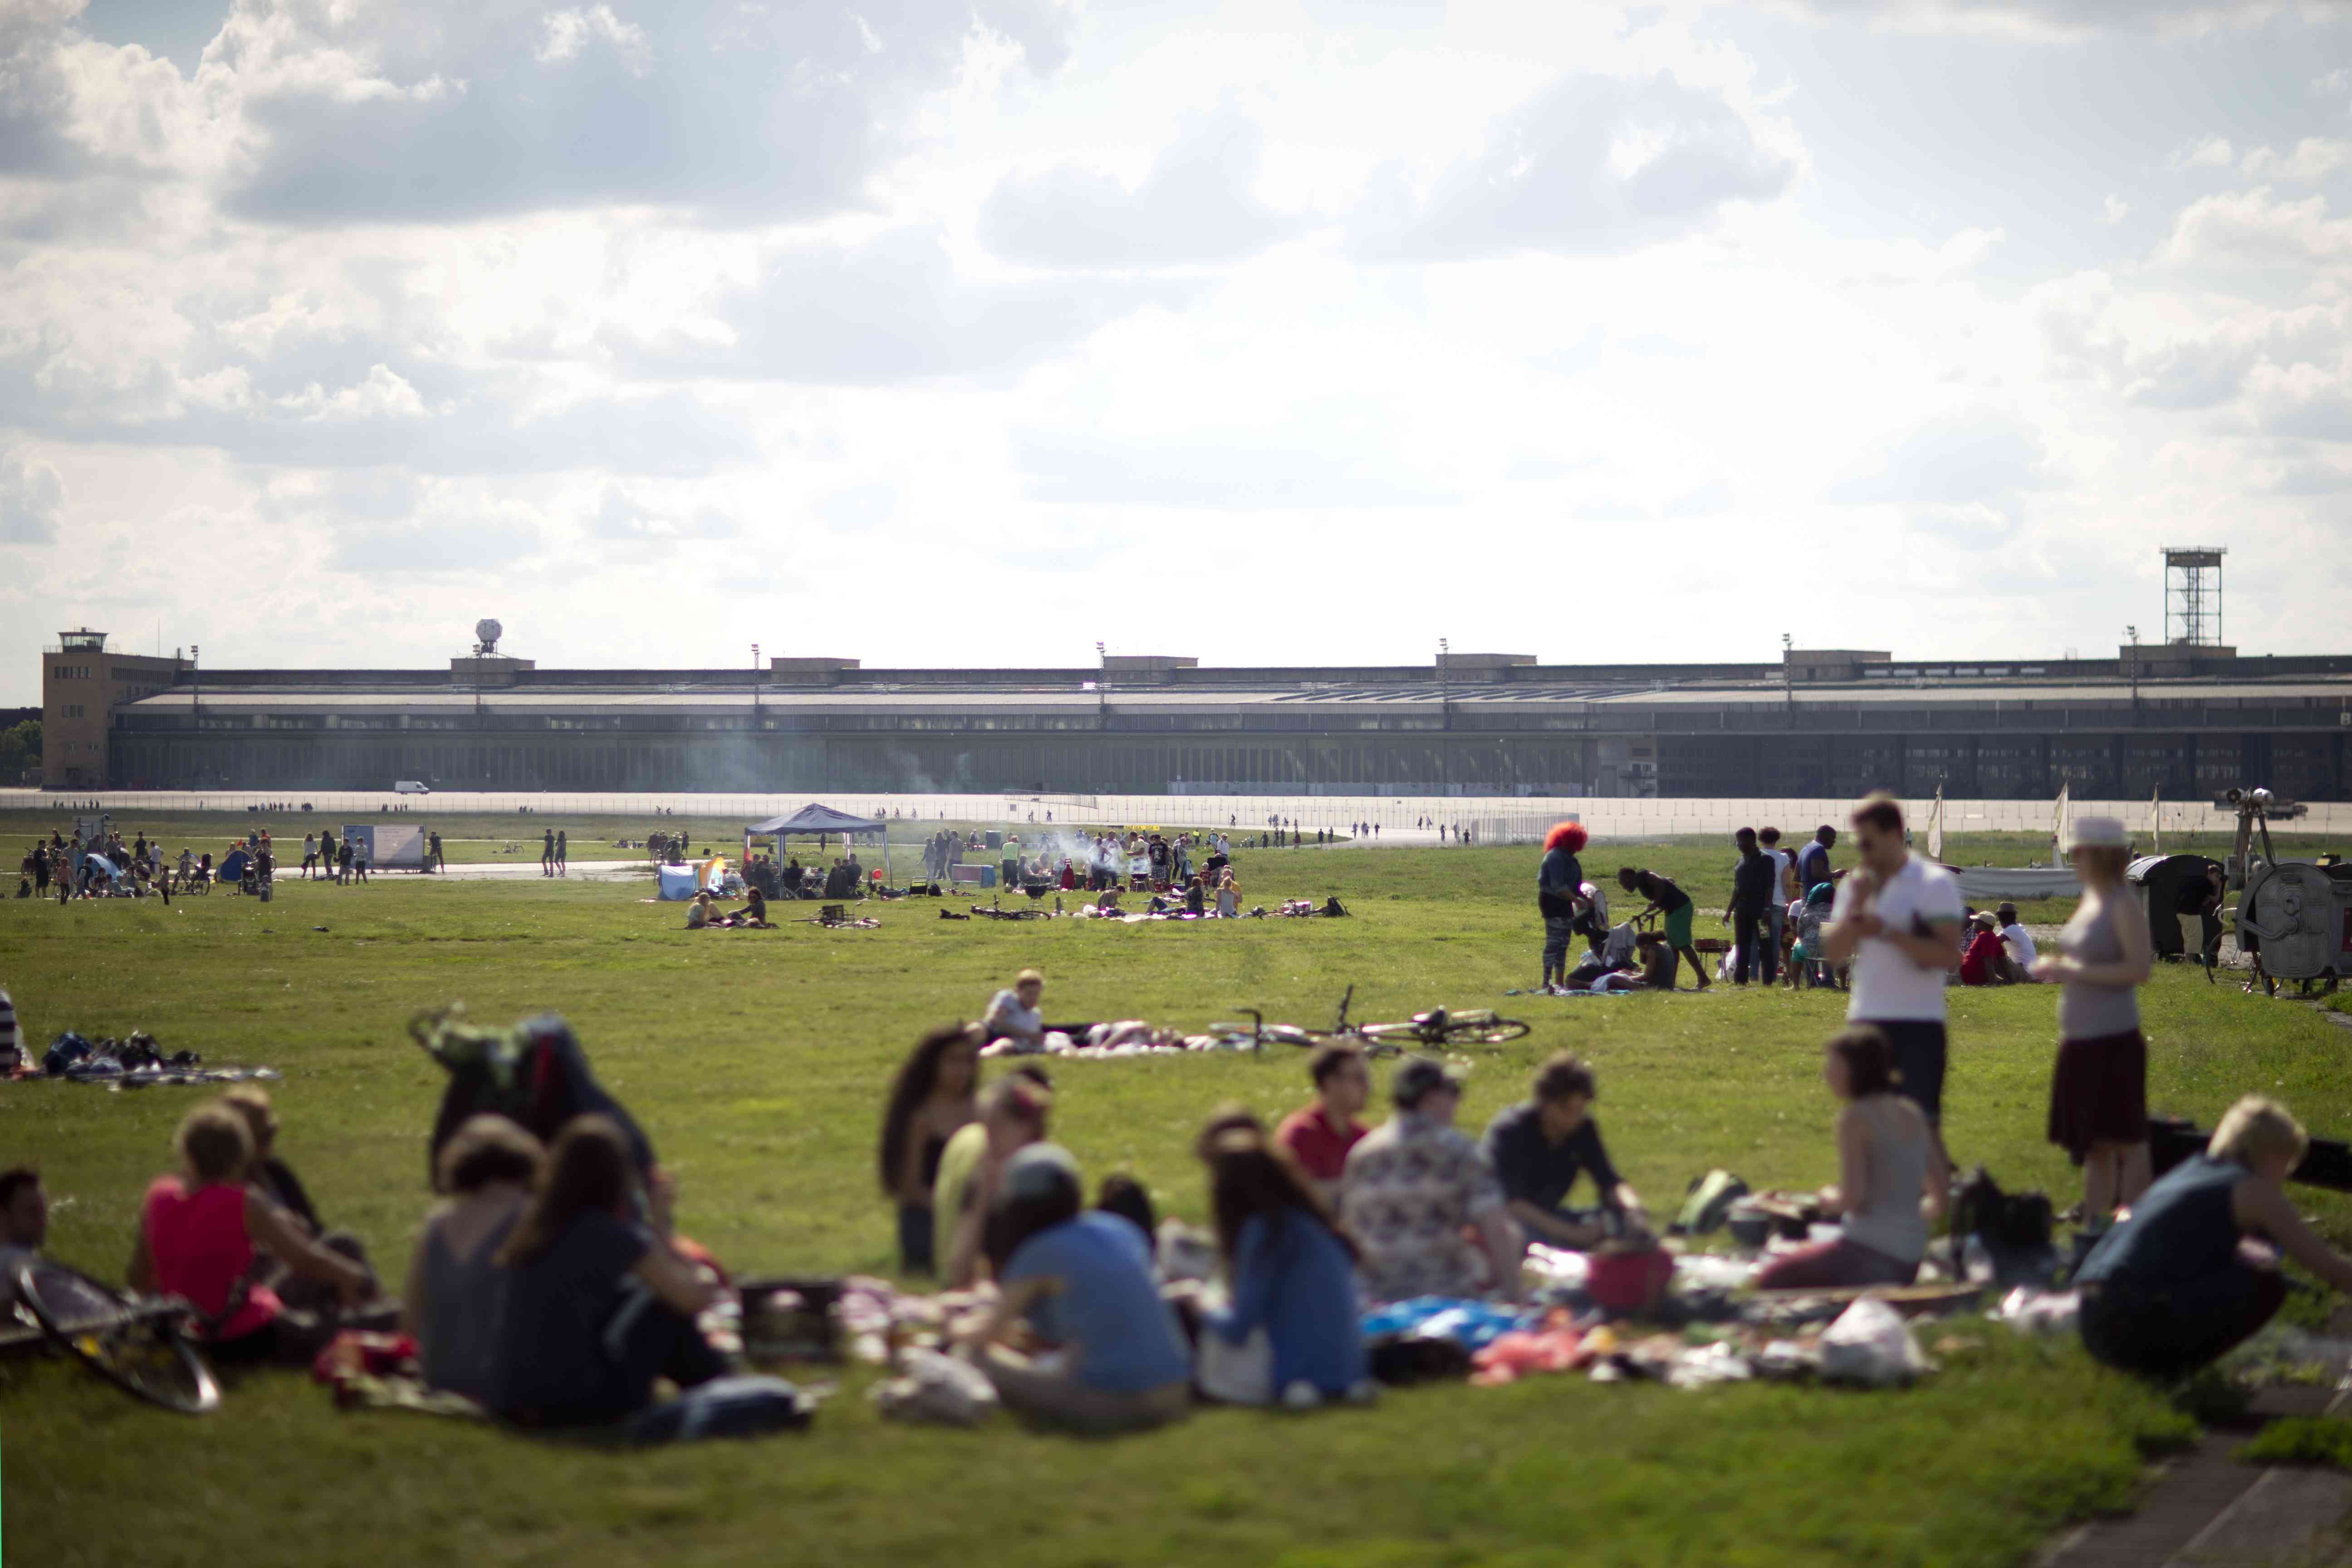 People barbecue in the park Tempelhofer Feld